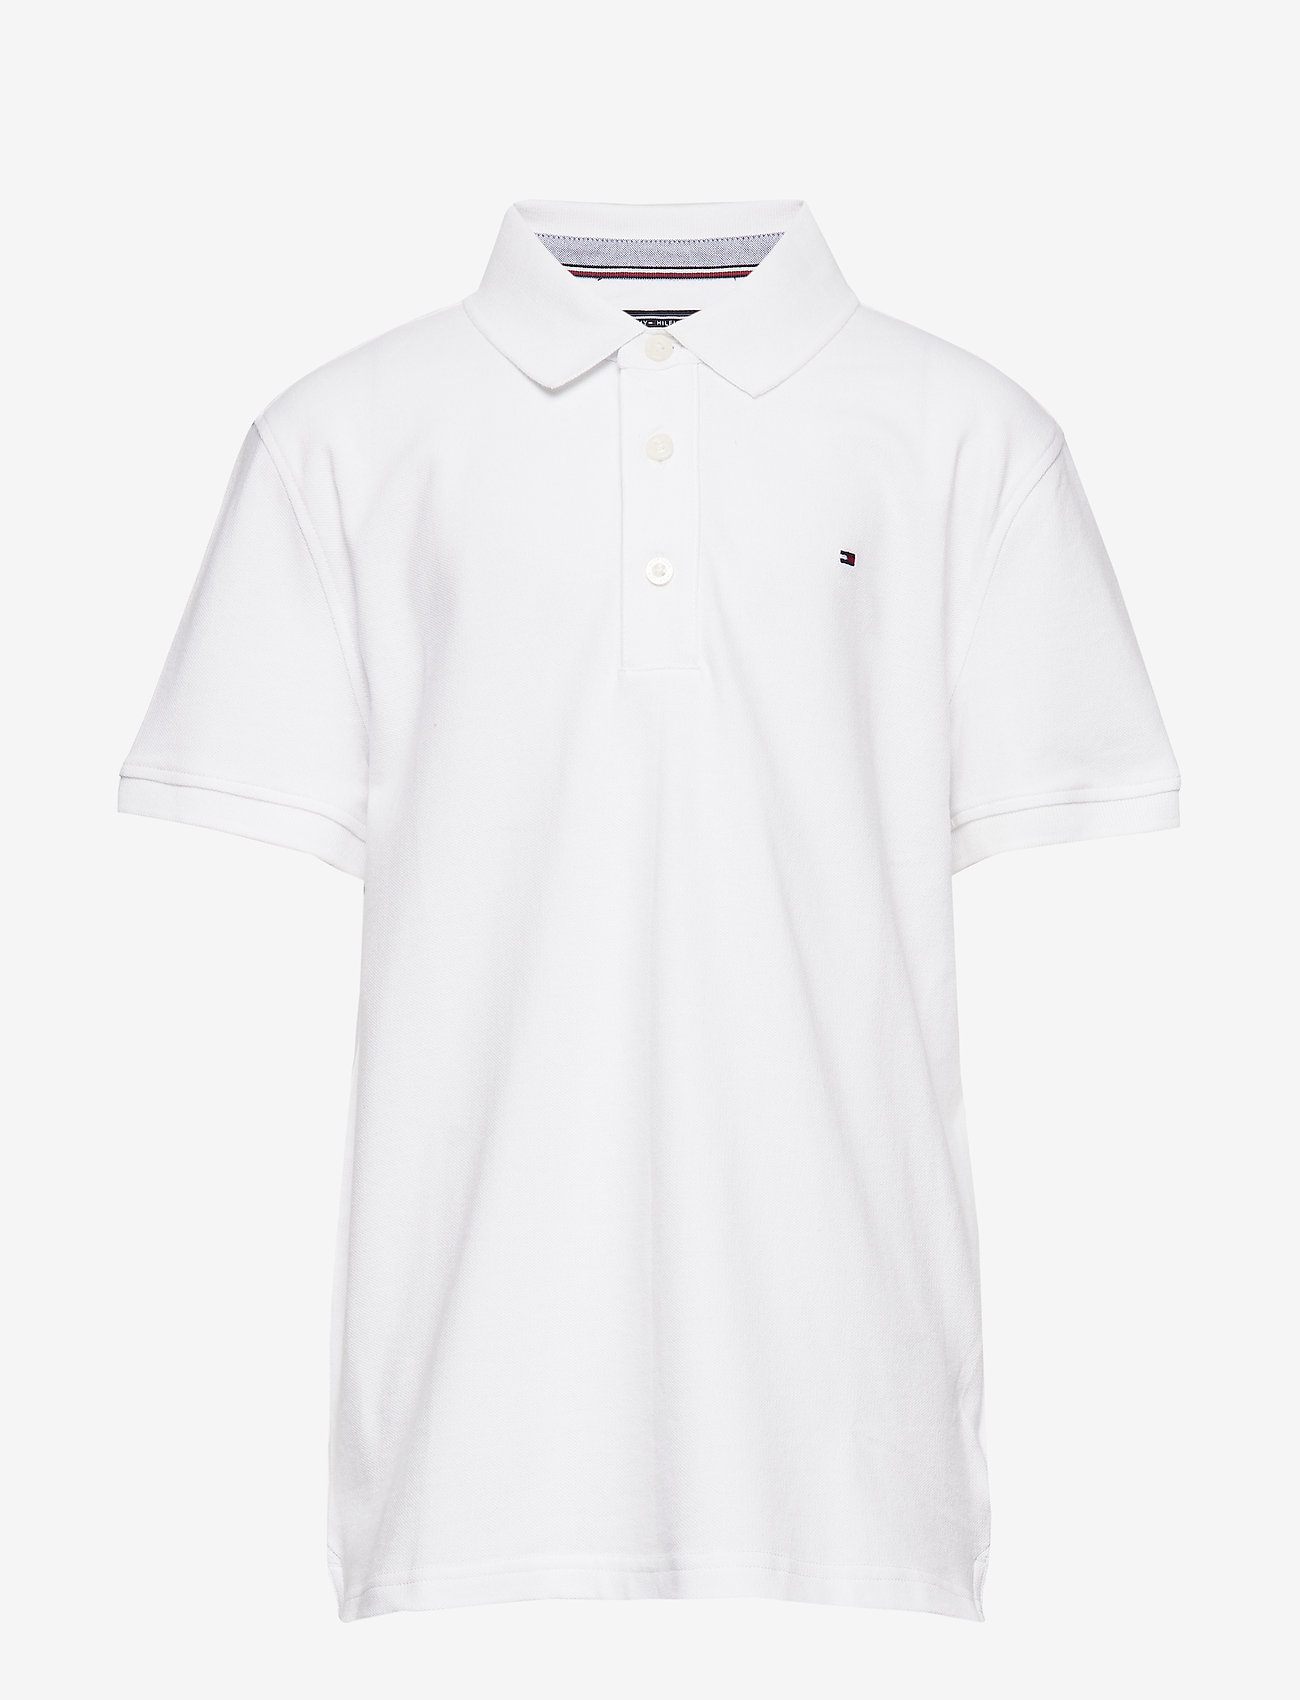 Tommy Hilfiger - BOYS TOMMY POLO S/S - polo shirts - bright white - 0